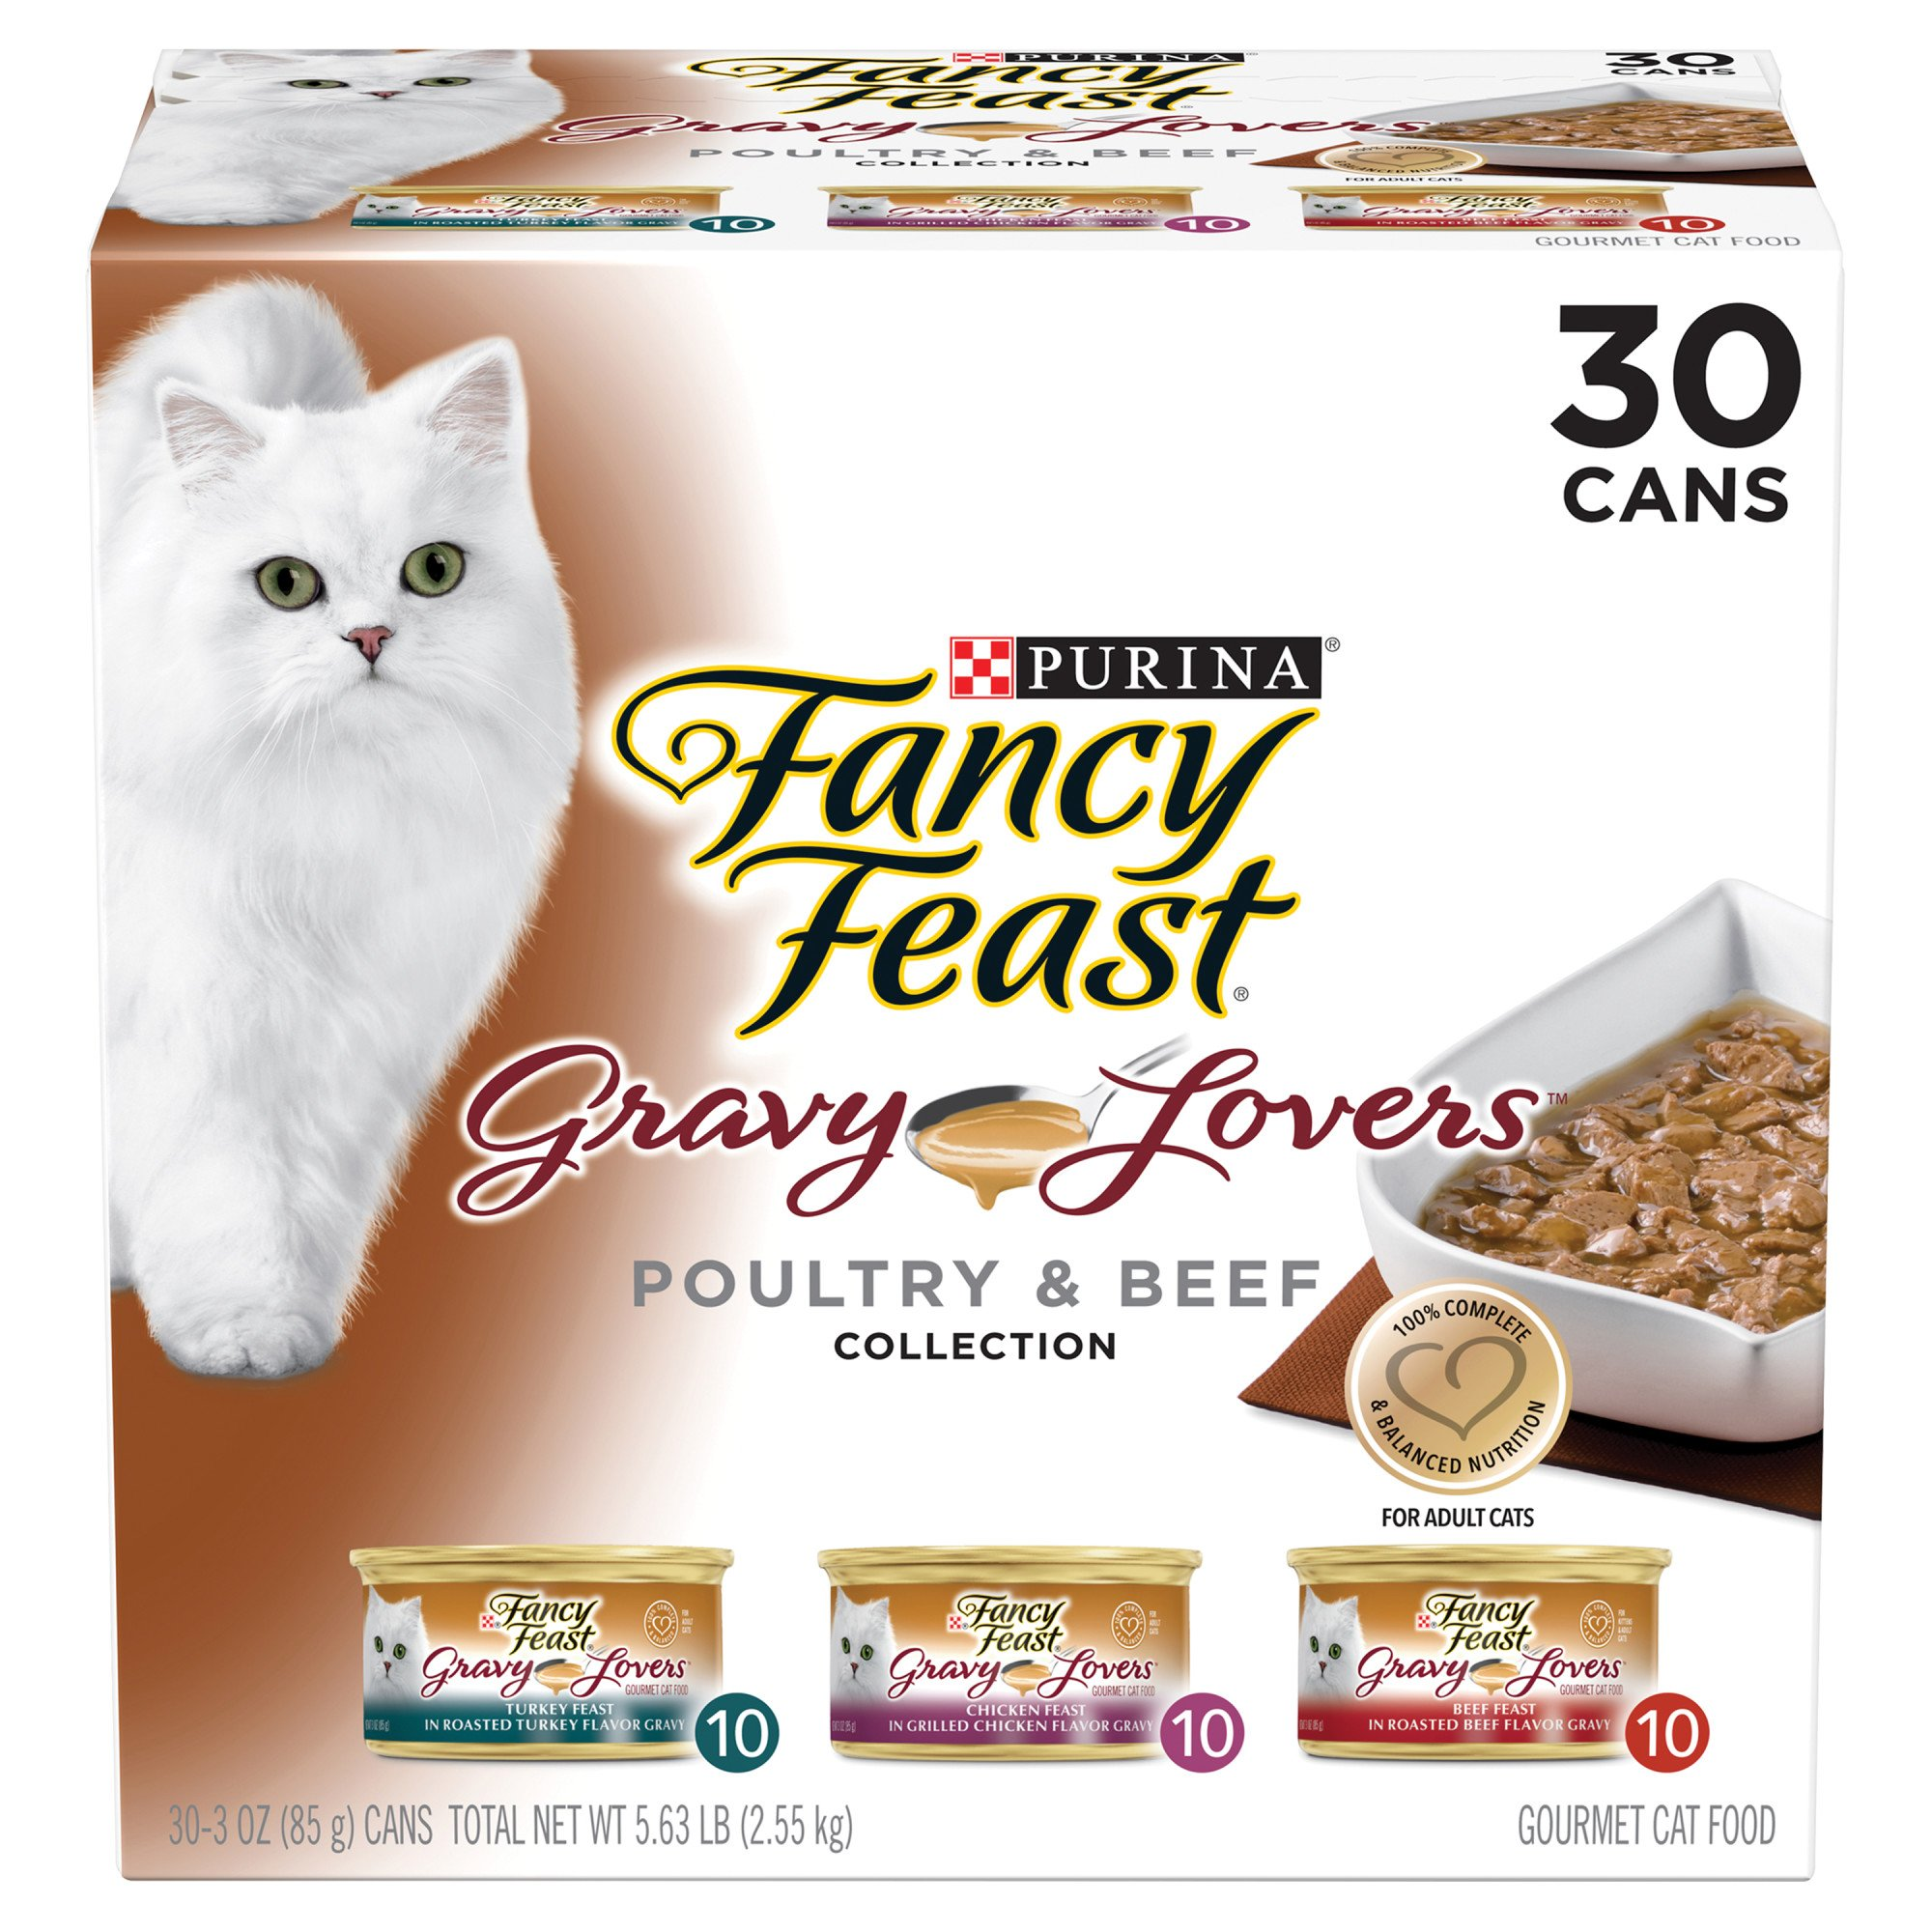 Purina Fancy Feast Gravy Lovers Poultry & Beef Feast Collection Wet Cat Food Variety Pack | Petco at Petco in Braselton, GA | Tuggl